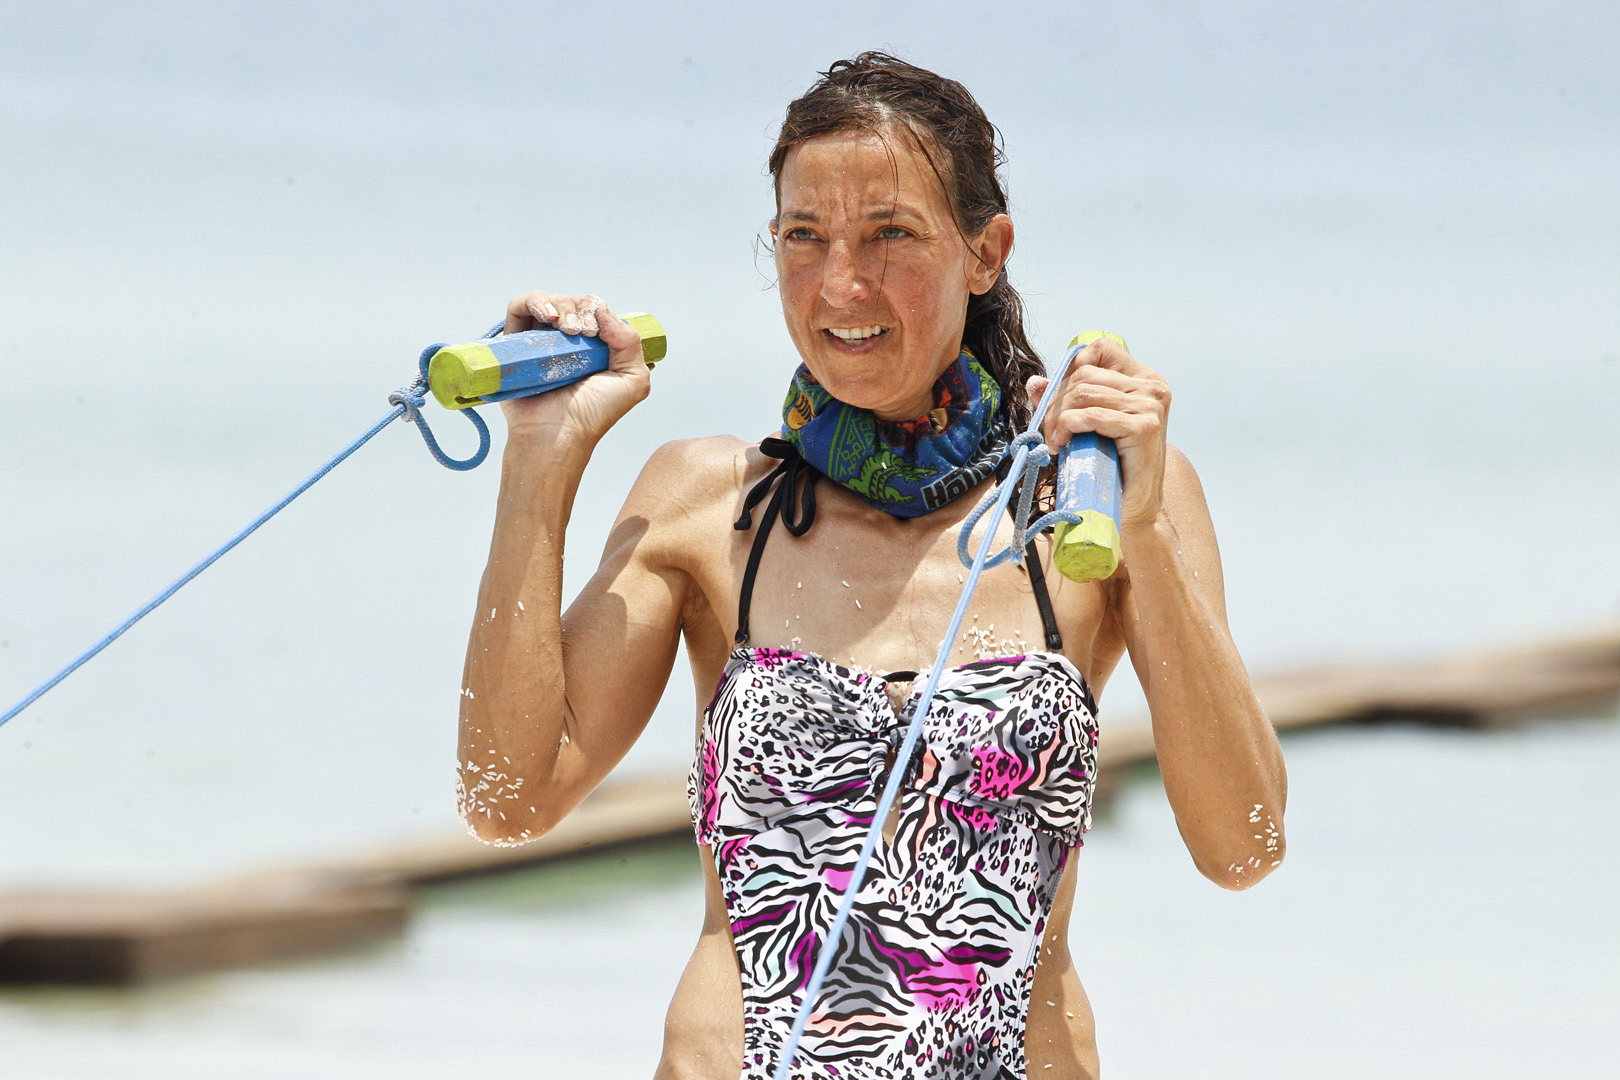 Debbie holds on tight while navigating through the challenge's final obstacle.